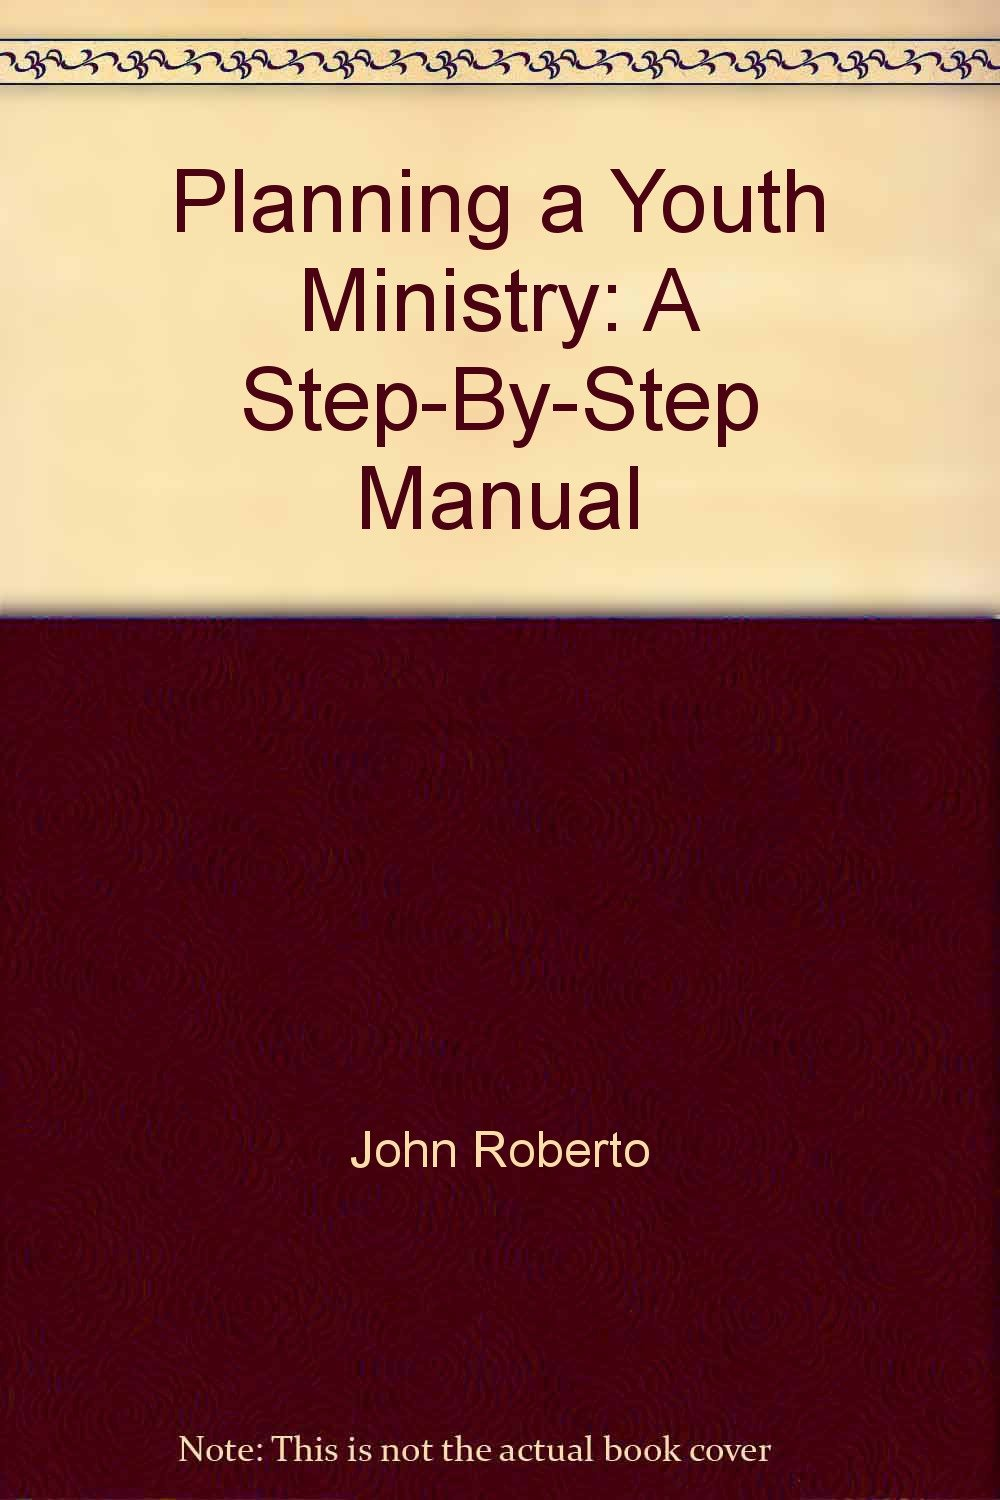 planning a youth ministry a step by step manual guides to youth rh amazon com Lesson Plans for Youth Ministry Youth Ministry Ideas